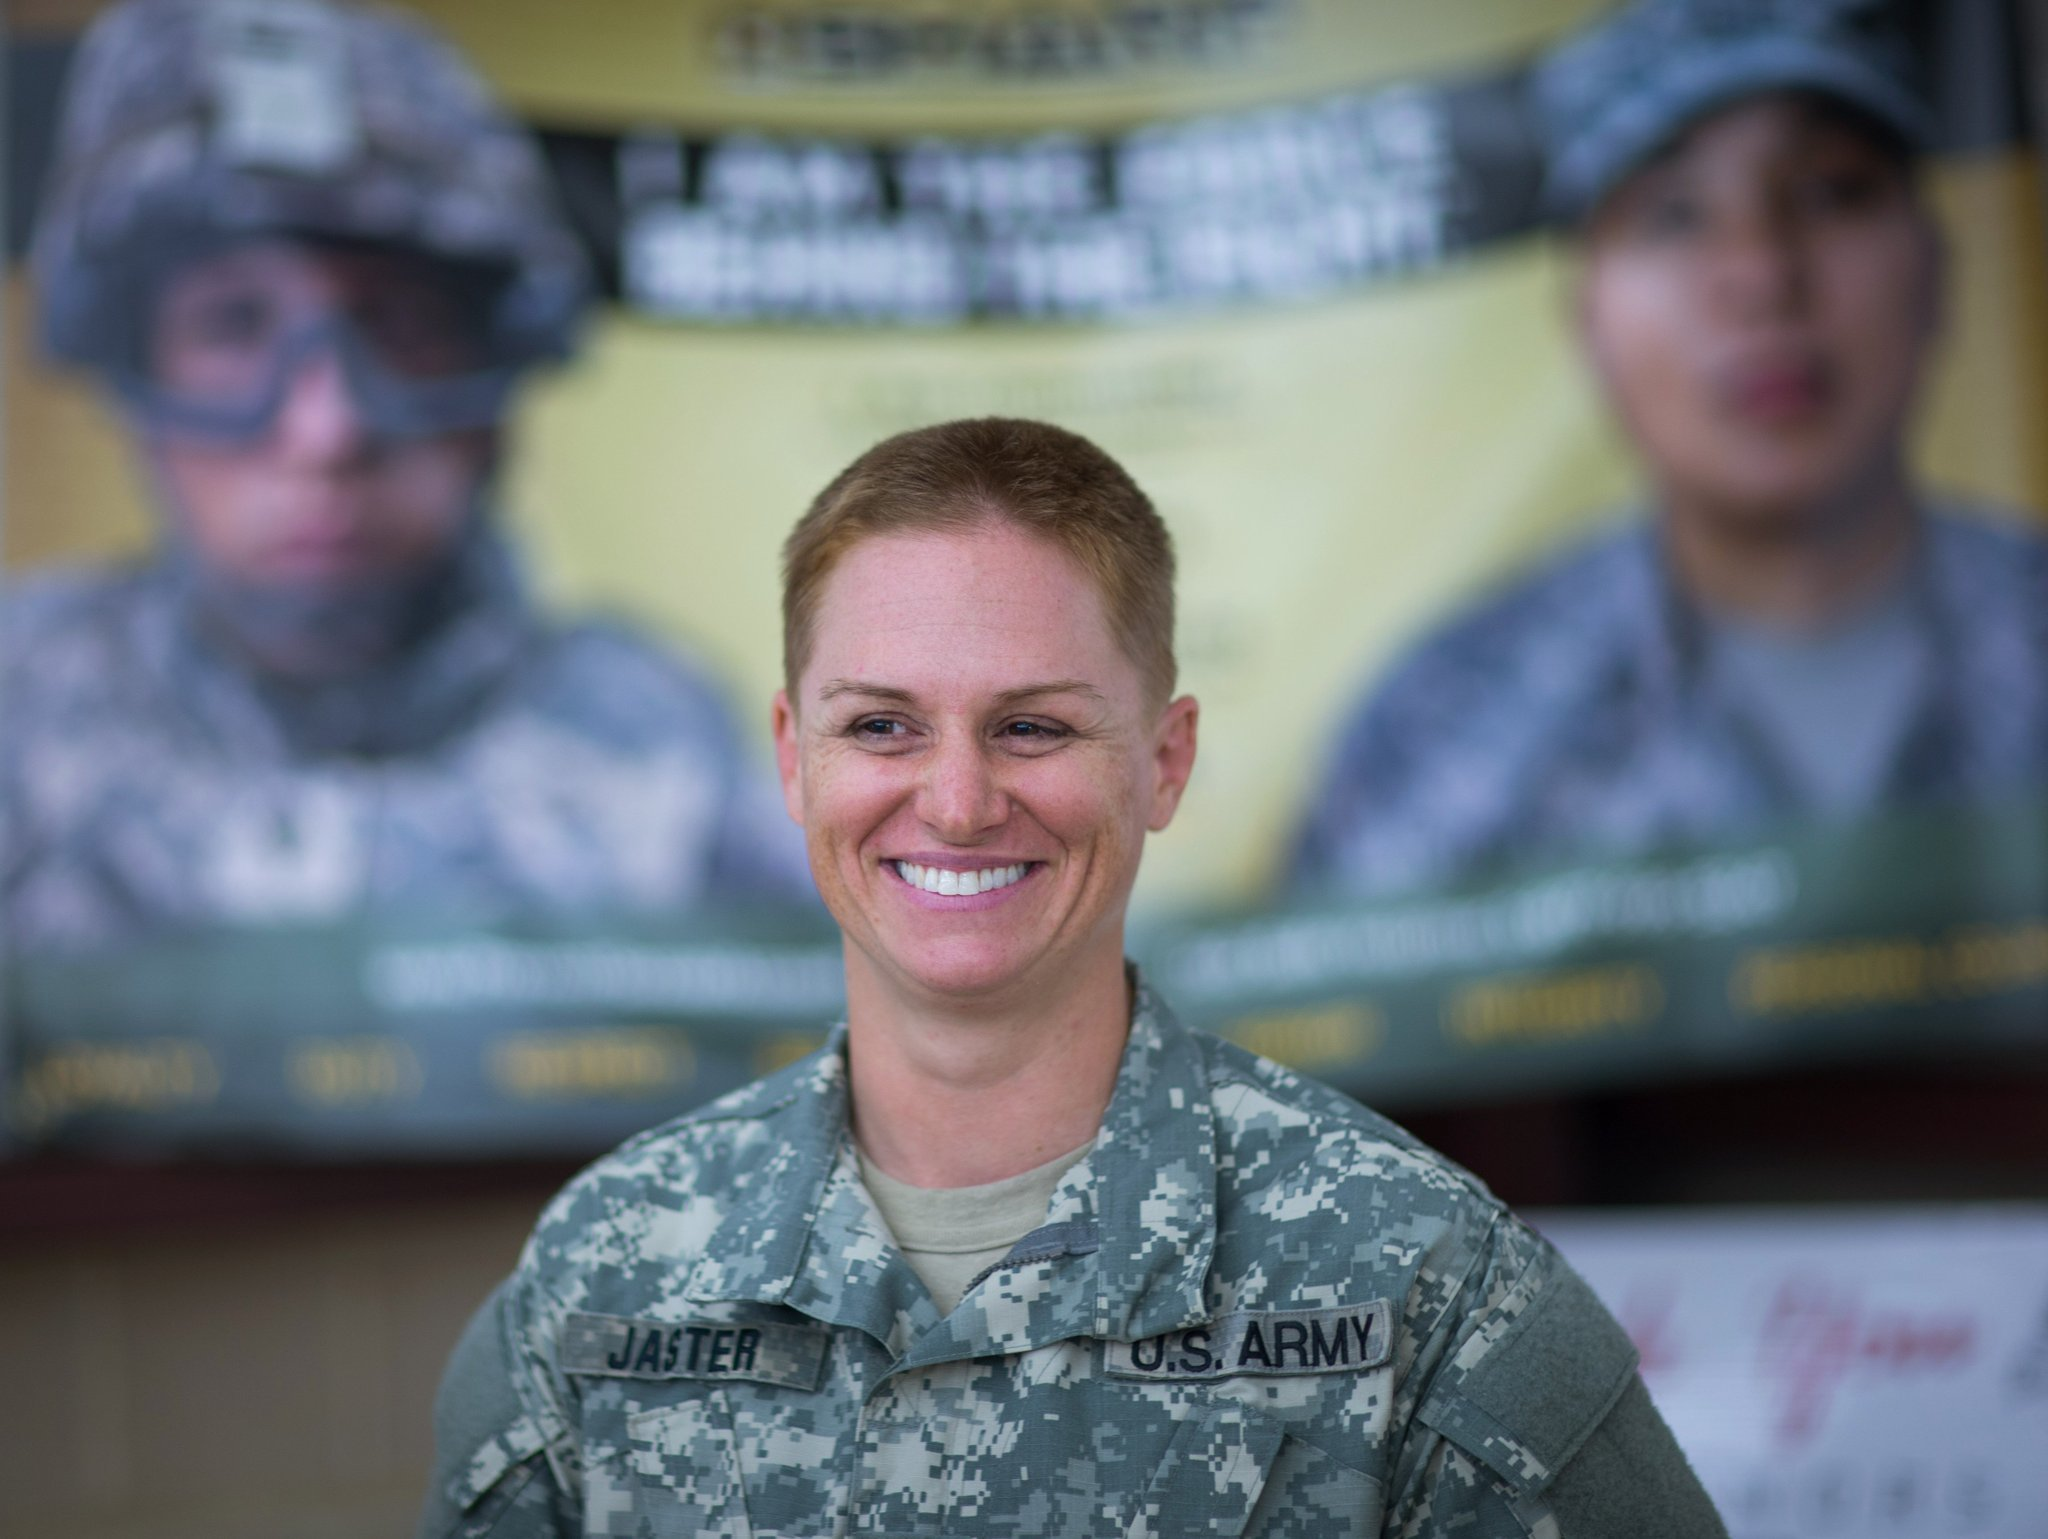 an examination of the role of women in military No law bars women from combat, but official military policy has long kept female service members away from the front lines by banning them from artillery, armor, infantry and other combat roles .